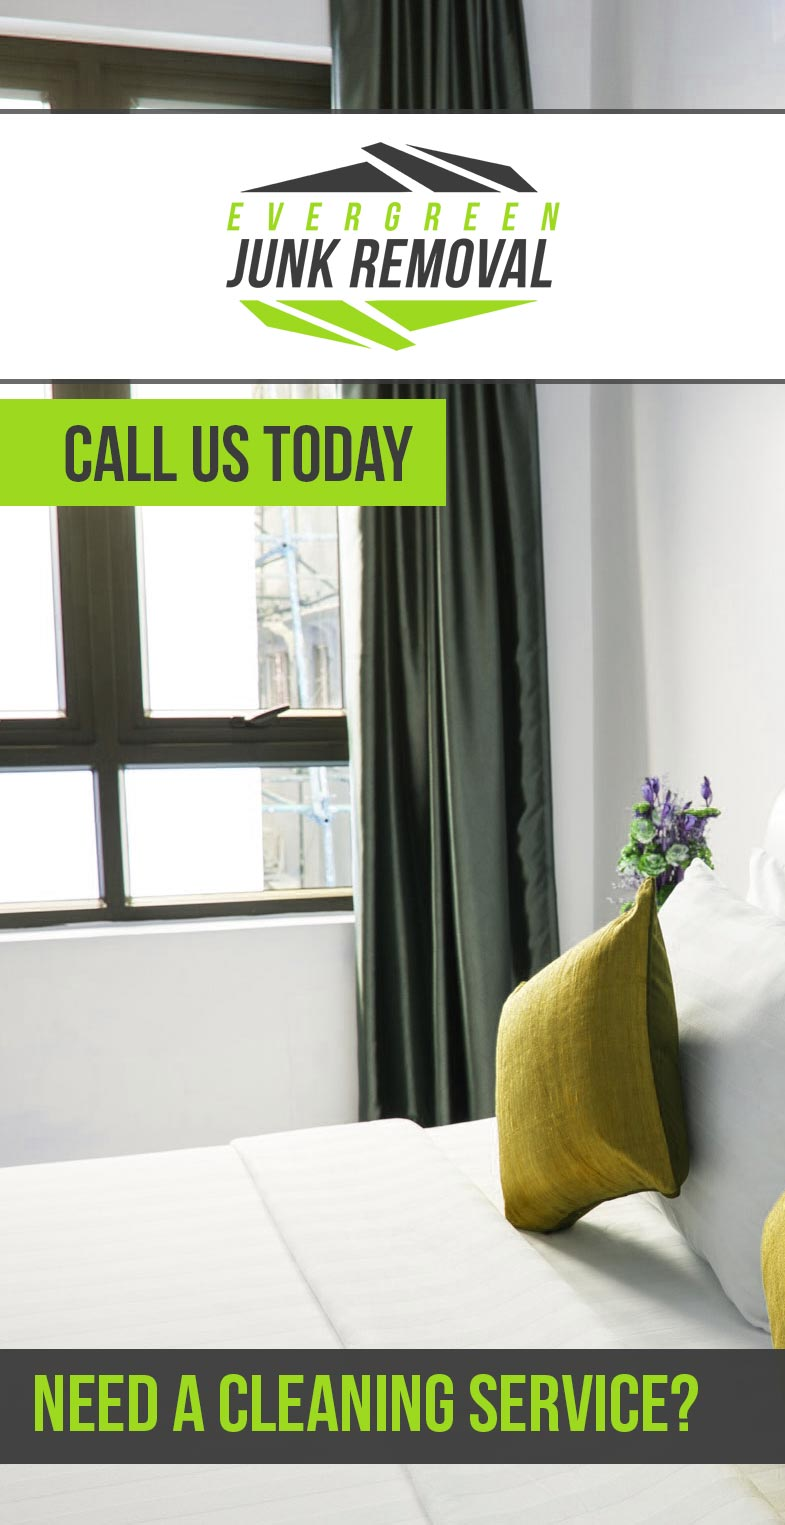 Maid Services South Bay FL